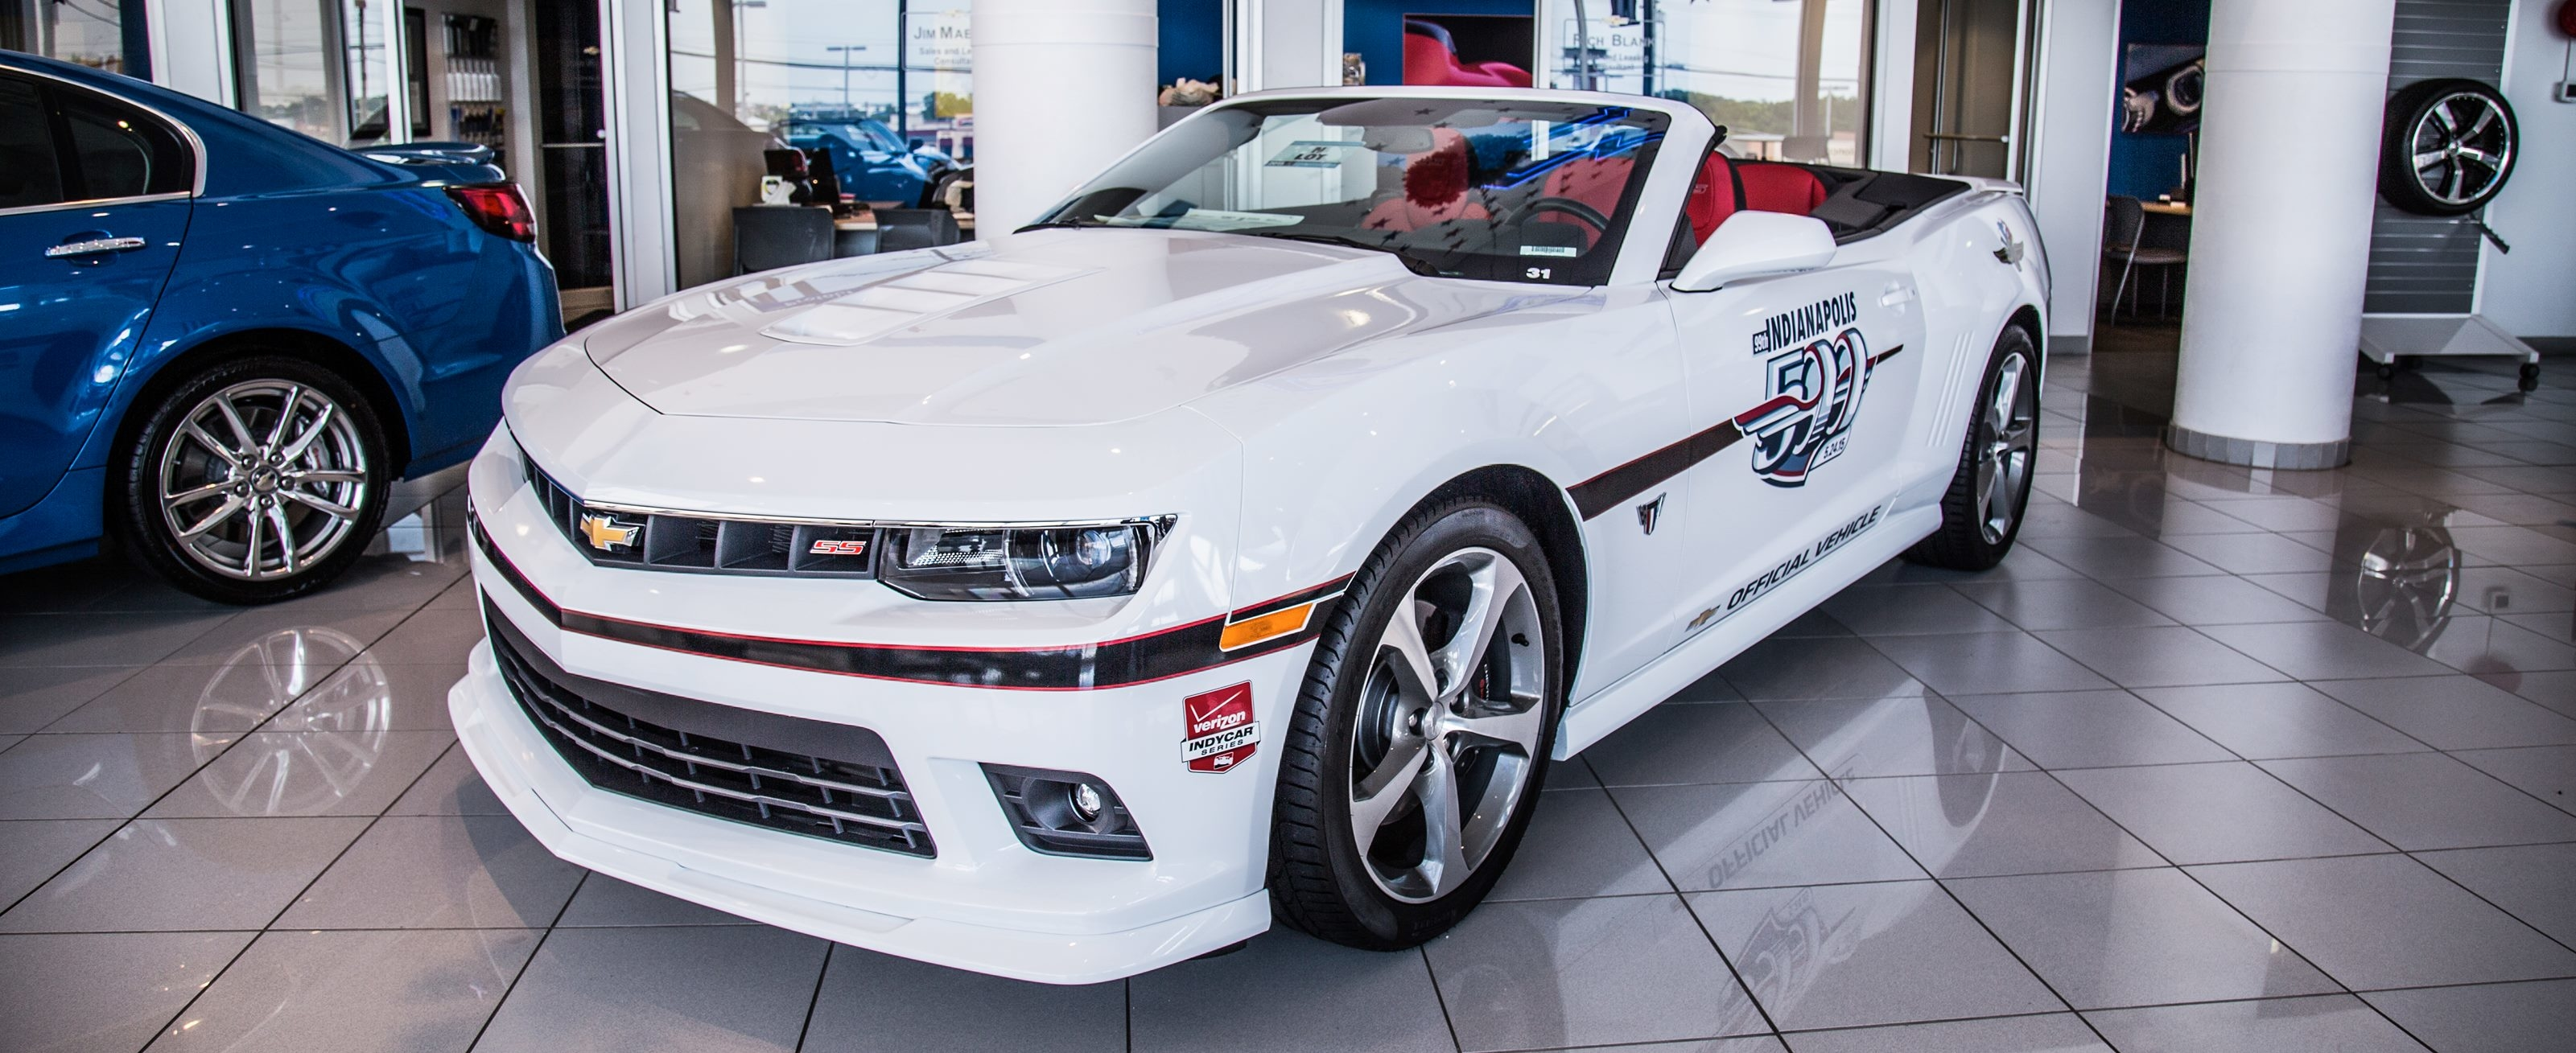 Jake Sweeney Chevrolet >> Jake Sweeney Chevrolet Car Dealer Cincinnati Oh 45246